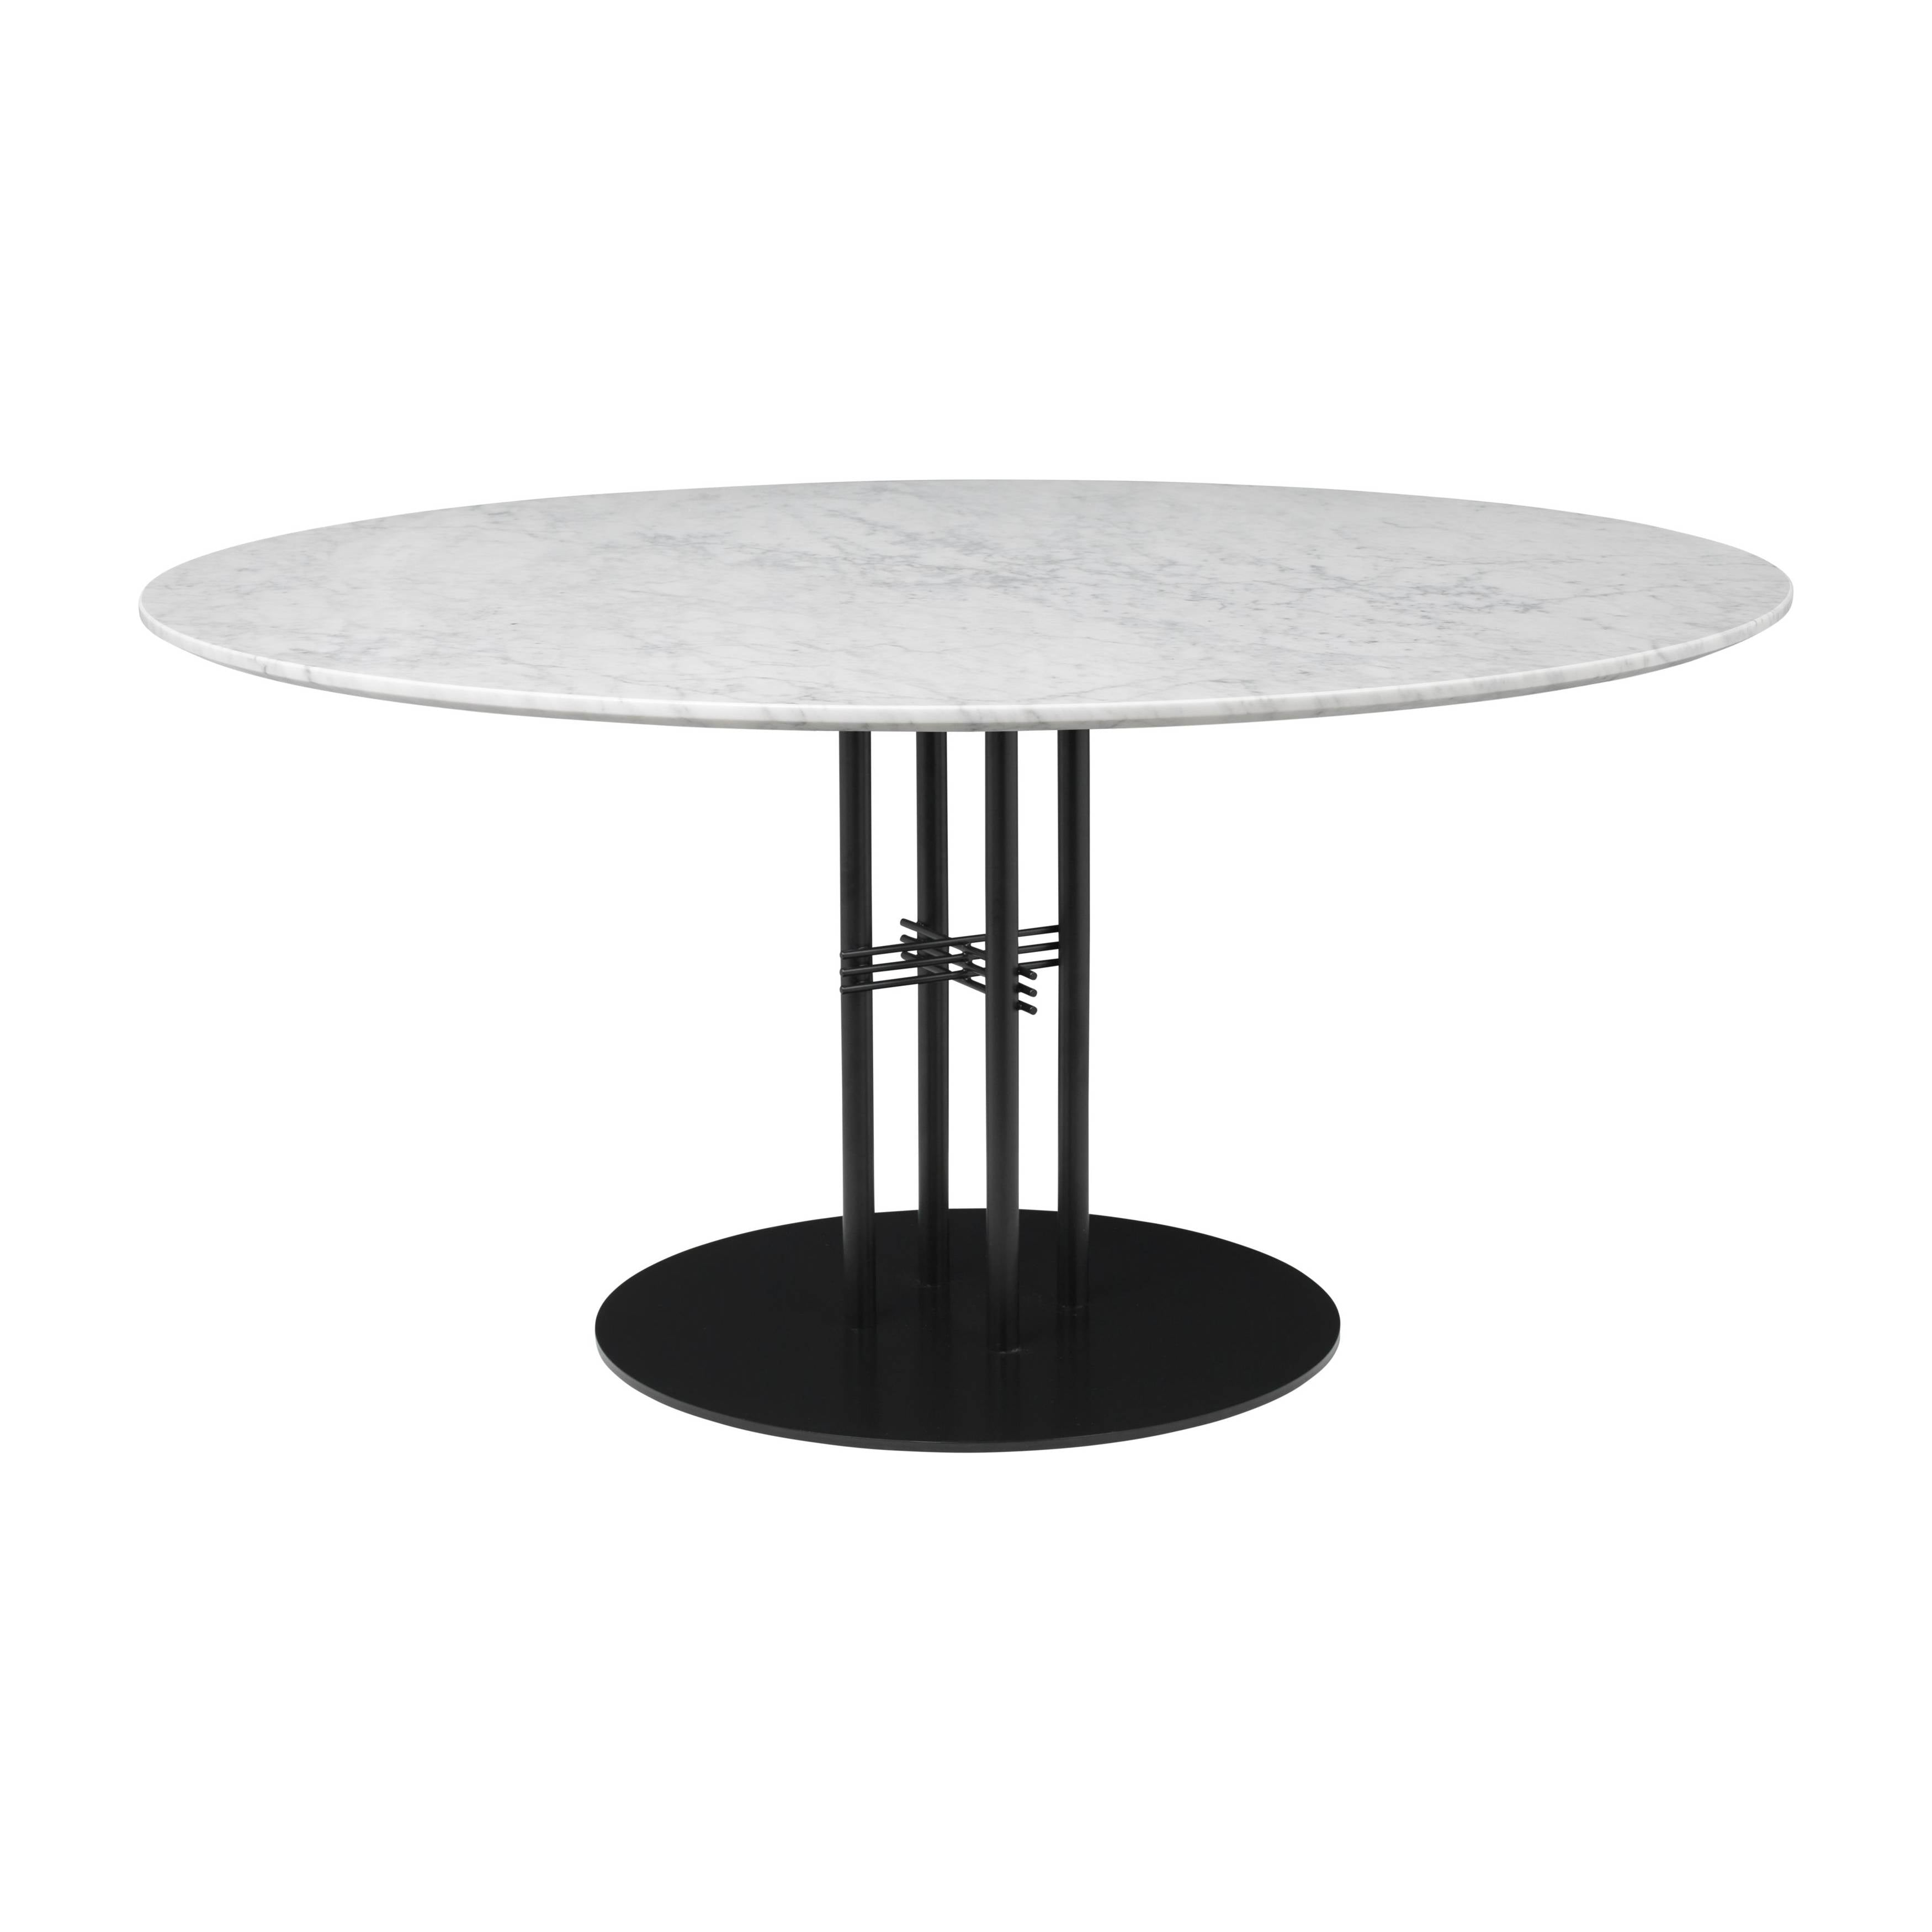 TS Column Dining Table: Extra Large + Black Base + White Carrara Marble